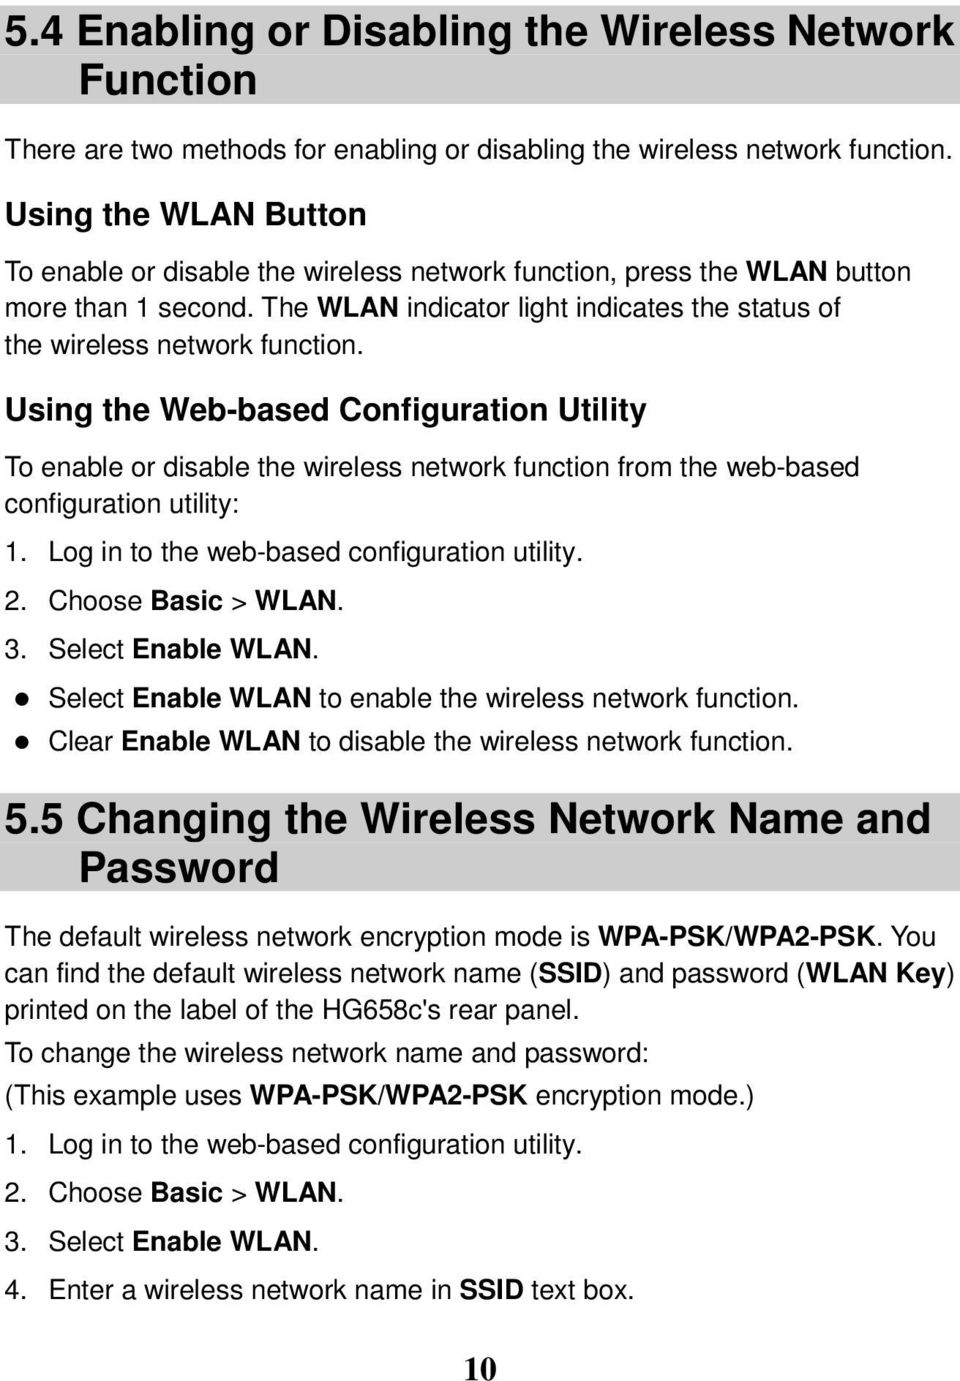 Using the Web-based Configuration Utility To enable or disable the wireless network function from the web-based configuration utility: 1. Log in to the web-based configuration utility. 2.